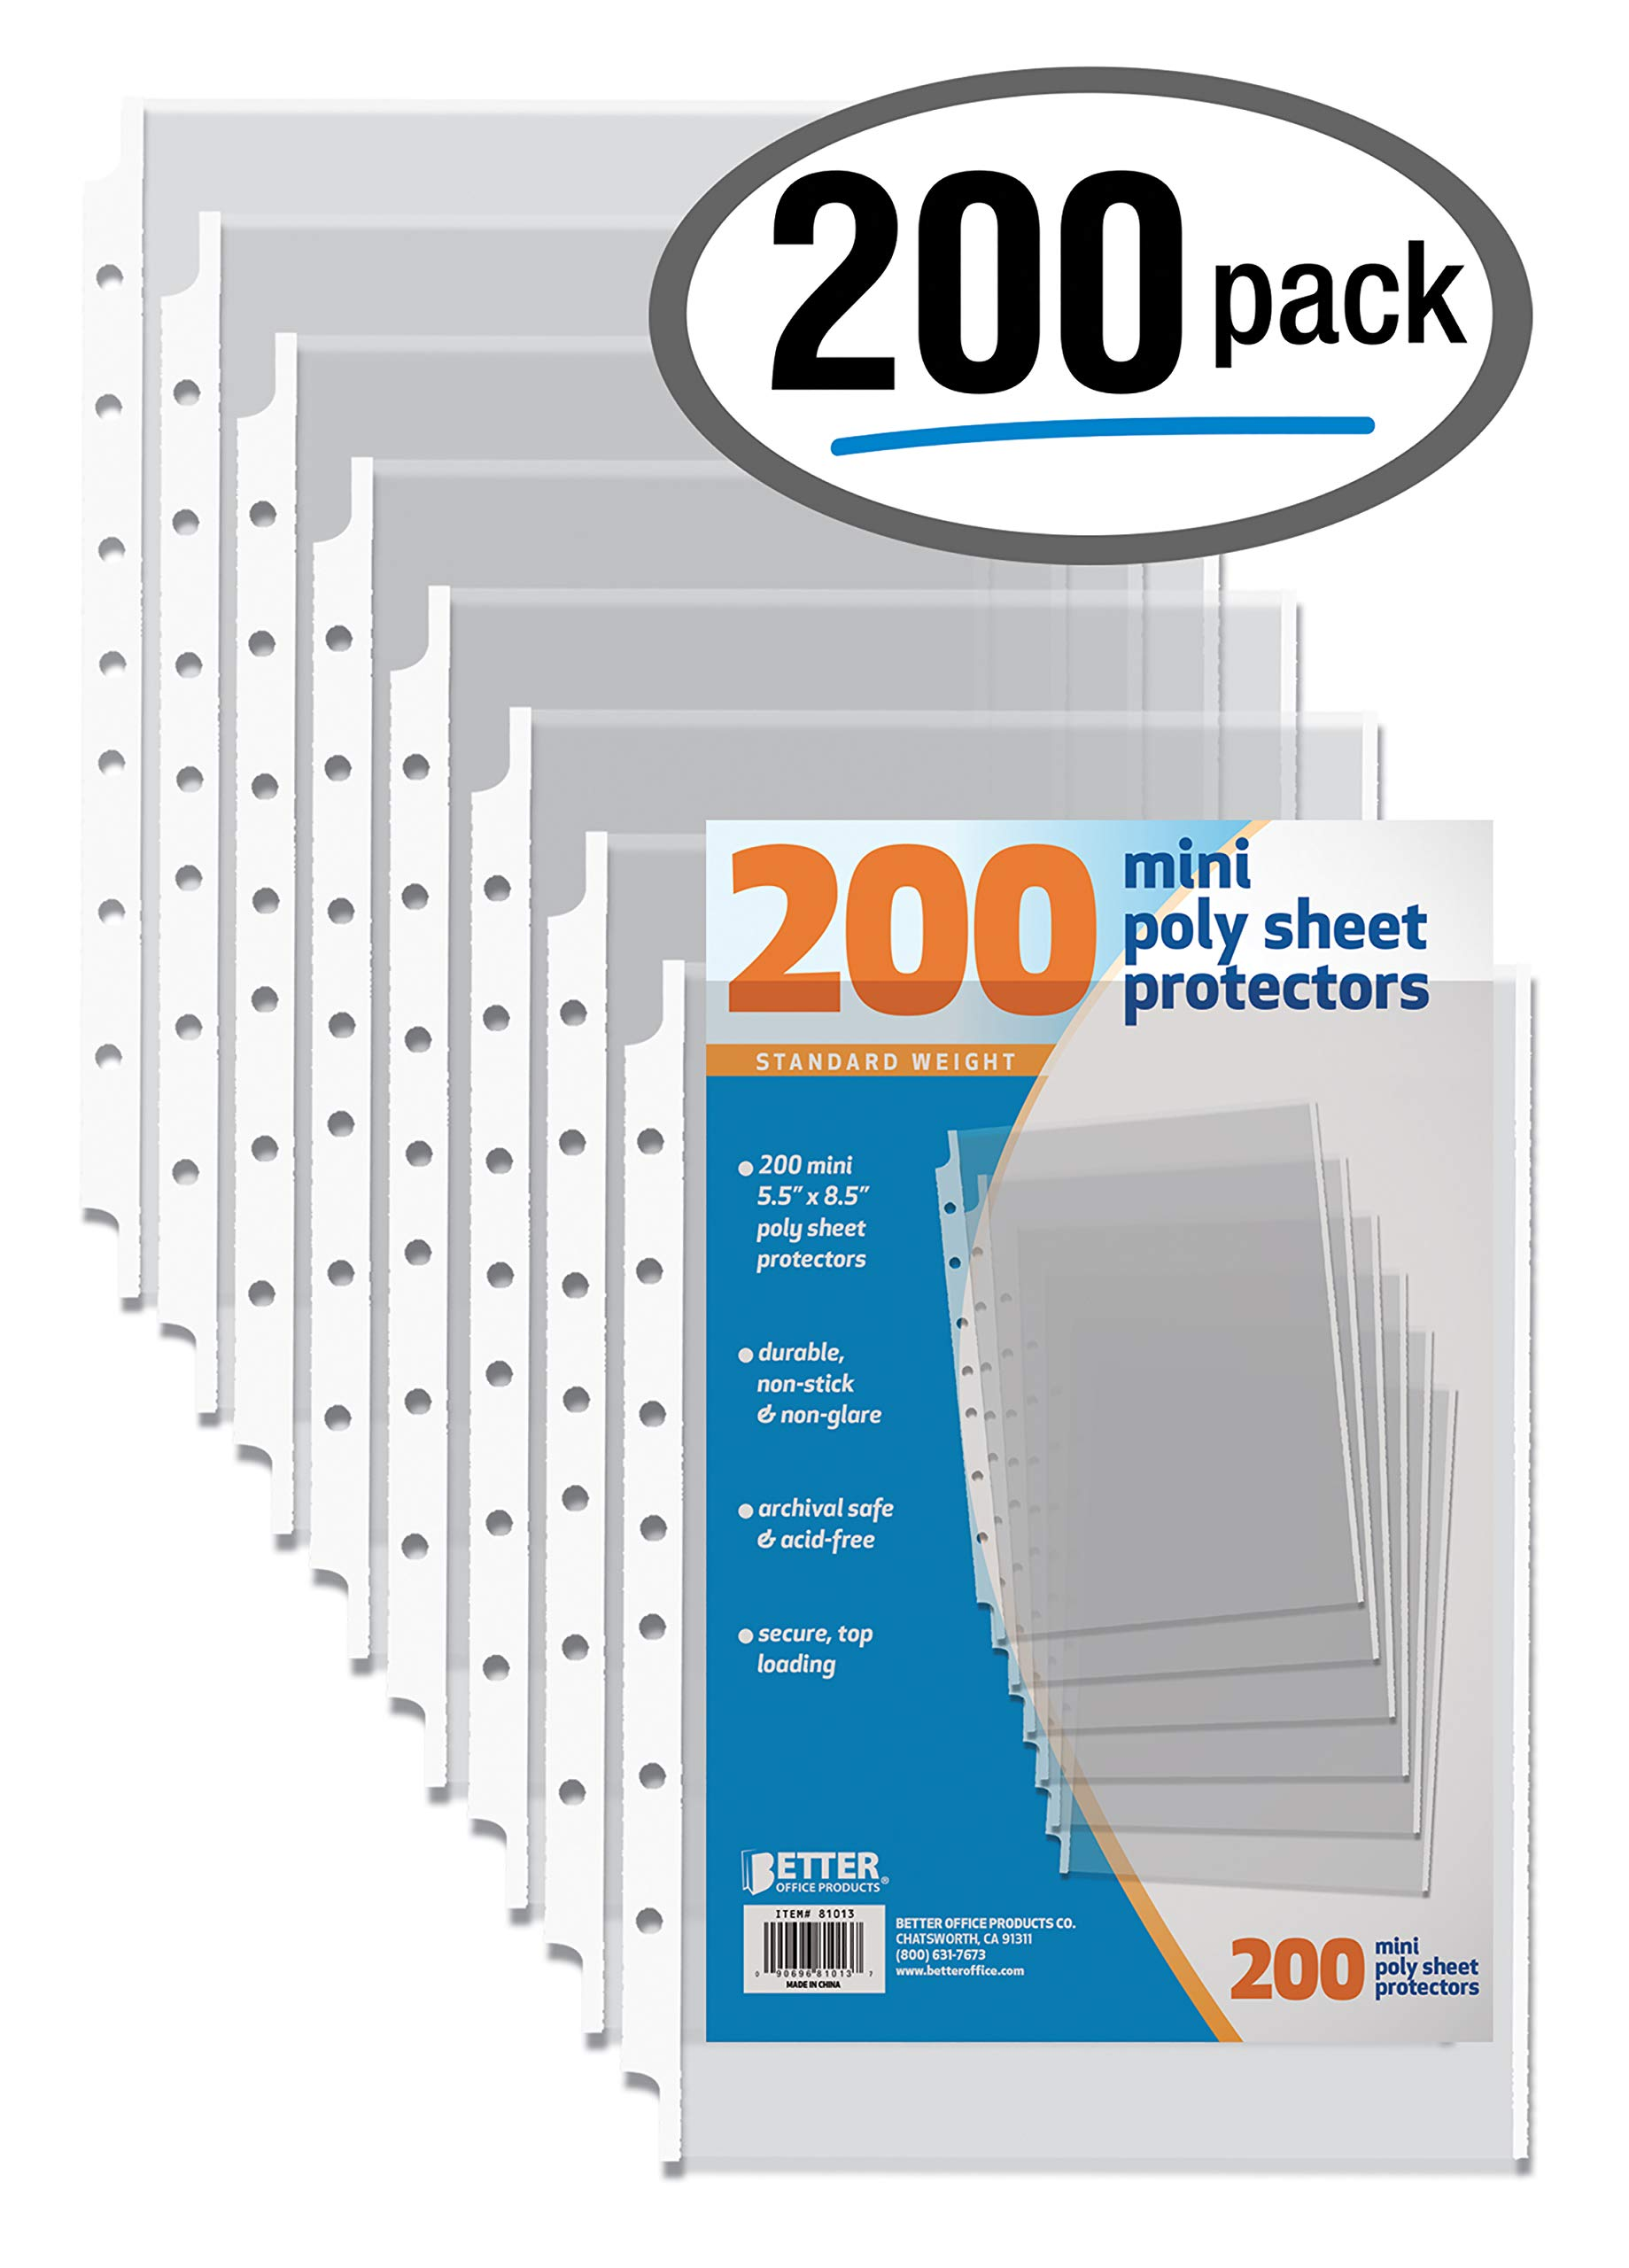 200 Count Mini Poly Sheet Protectors, Standard Weight, Diamond Clear, by Better Office Products, 5.5'' x 8.5'', 200 Pack by Better Office Products